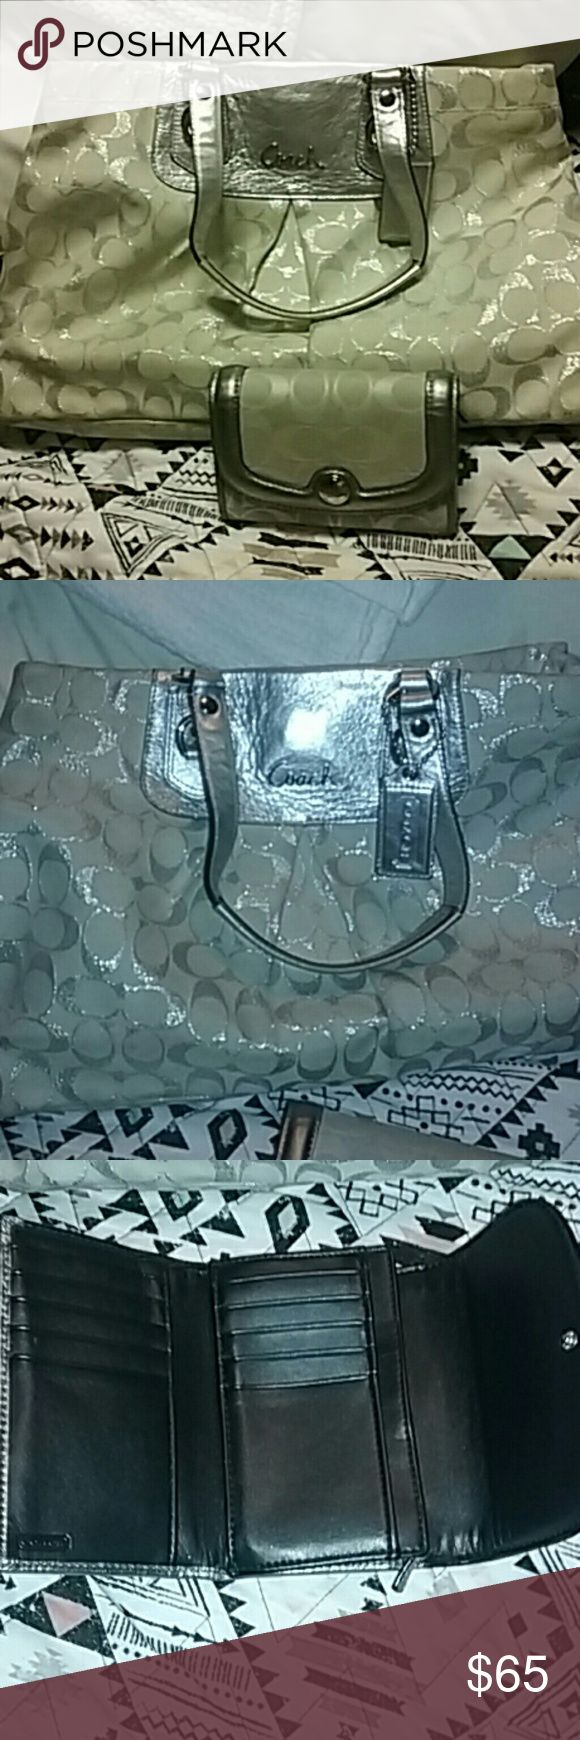 Coach Purse and wallet White and sliver Coach purse with just the right bling. Inside clean. Wallet  excellent condition no wear on edges. A little wear on corners of purse. Coach Bags Satchels